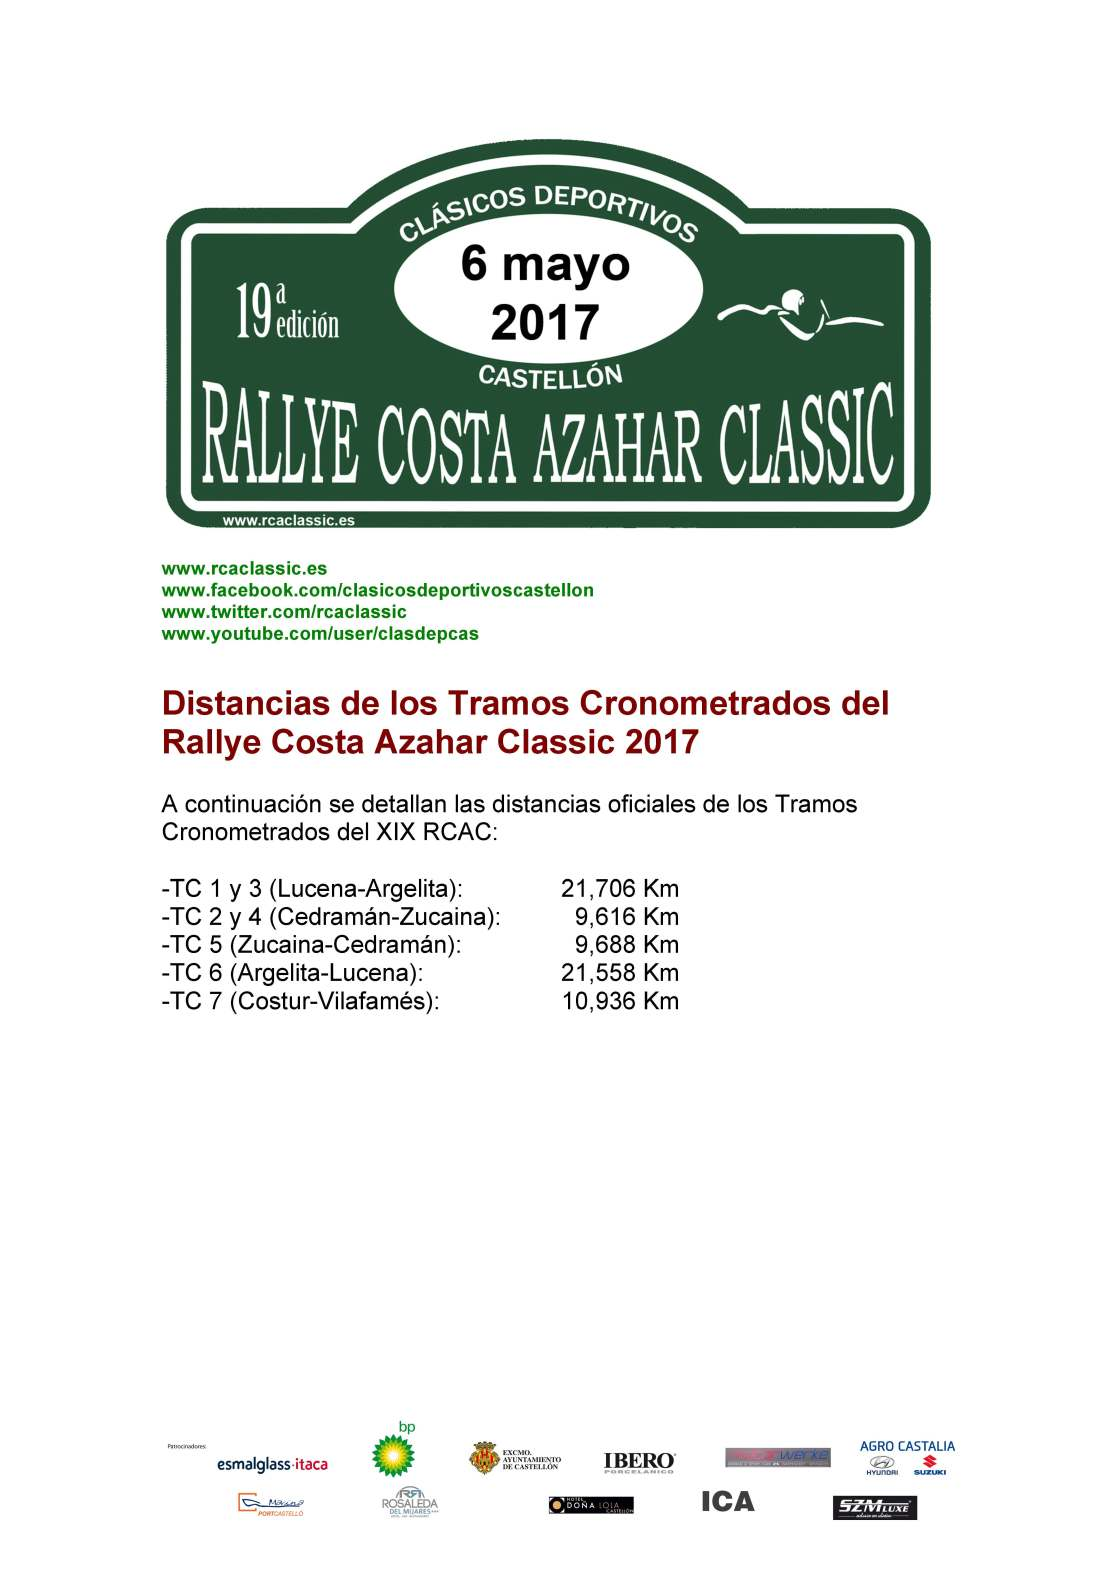 05 Distancias Tramos RCAC 2017